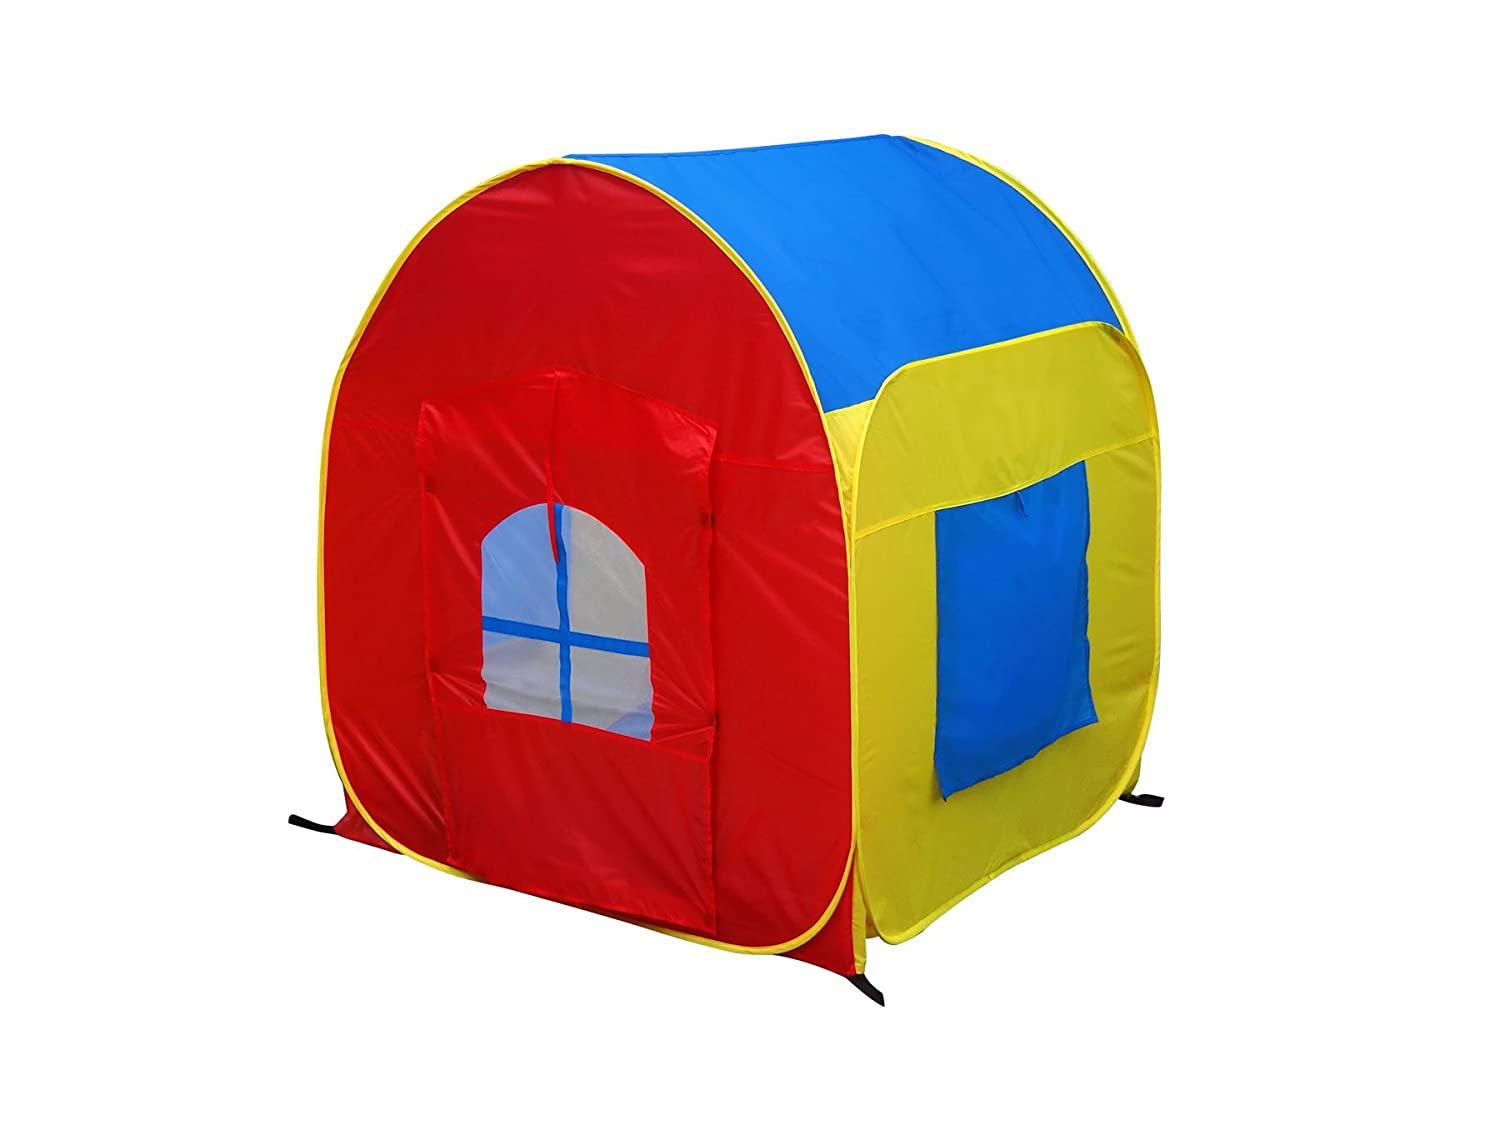 GigaTent My First House Pop-Up Play Tent – Large Size Kids Play House, 48 x 48 – Bright and Colorful, Easy Instant Assembly, Folds Flat – Includes Flat Storage Bag